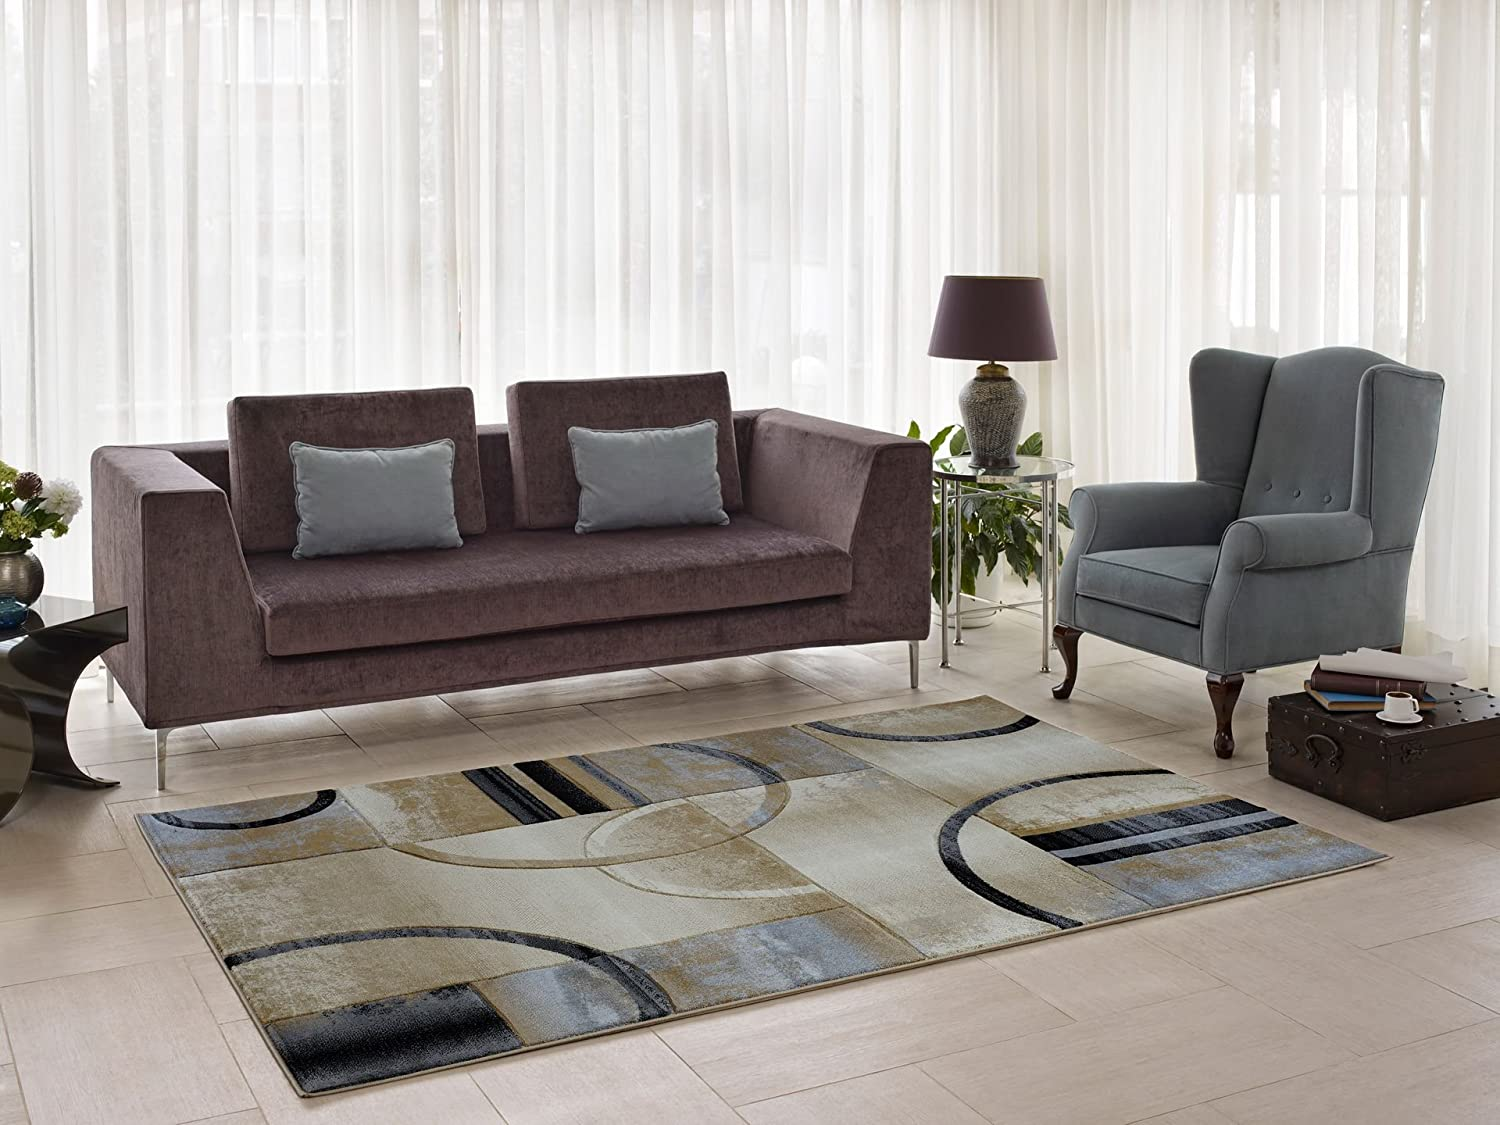 Ladole Adonis Beige Grey Area Rug Living Room, Dining Area Bedroom Hallway (2'7 x 4'11) Ladole Rugs ANS1093